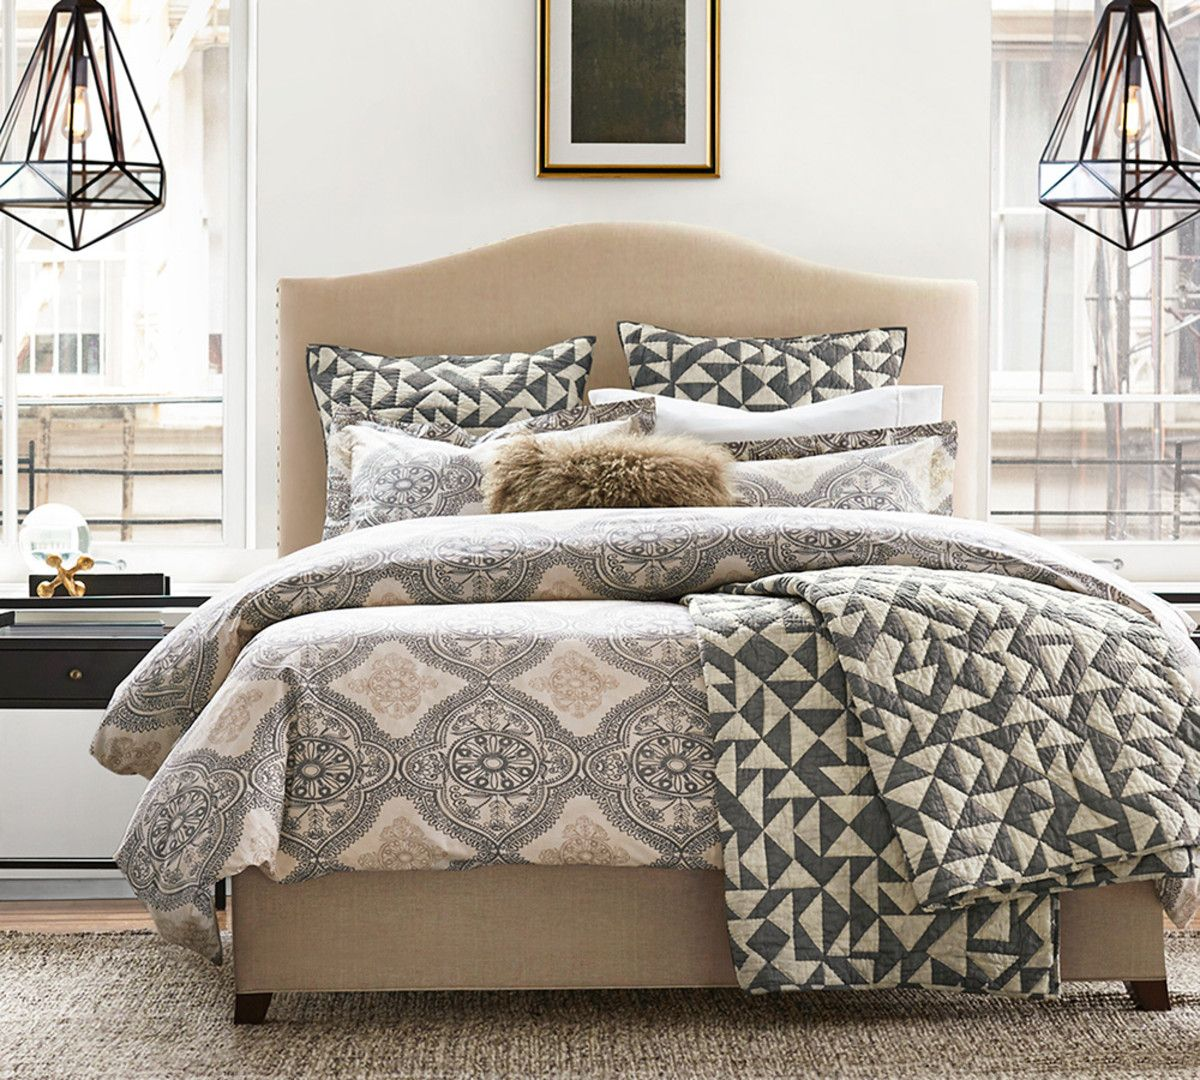 Raleigh Upholstered Camelback Bed With Nailhead Headboards For